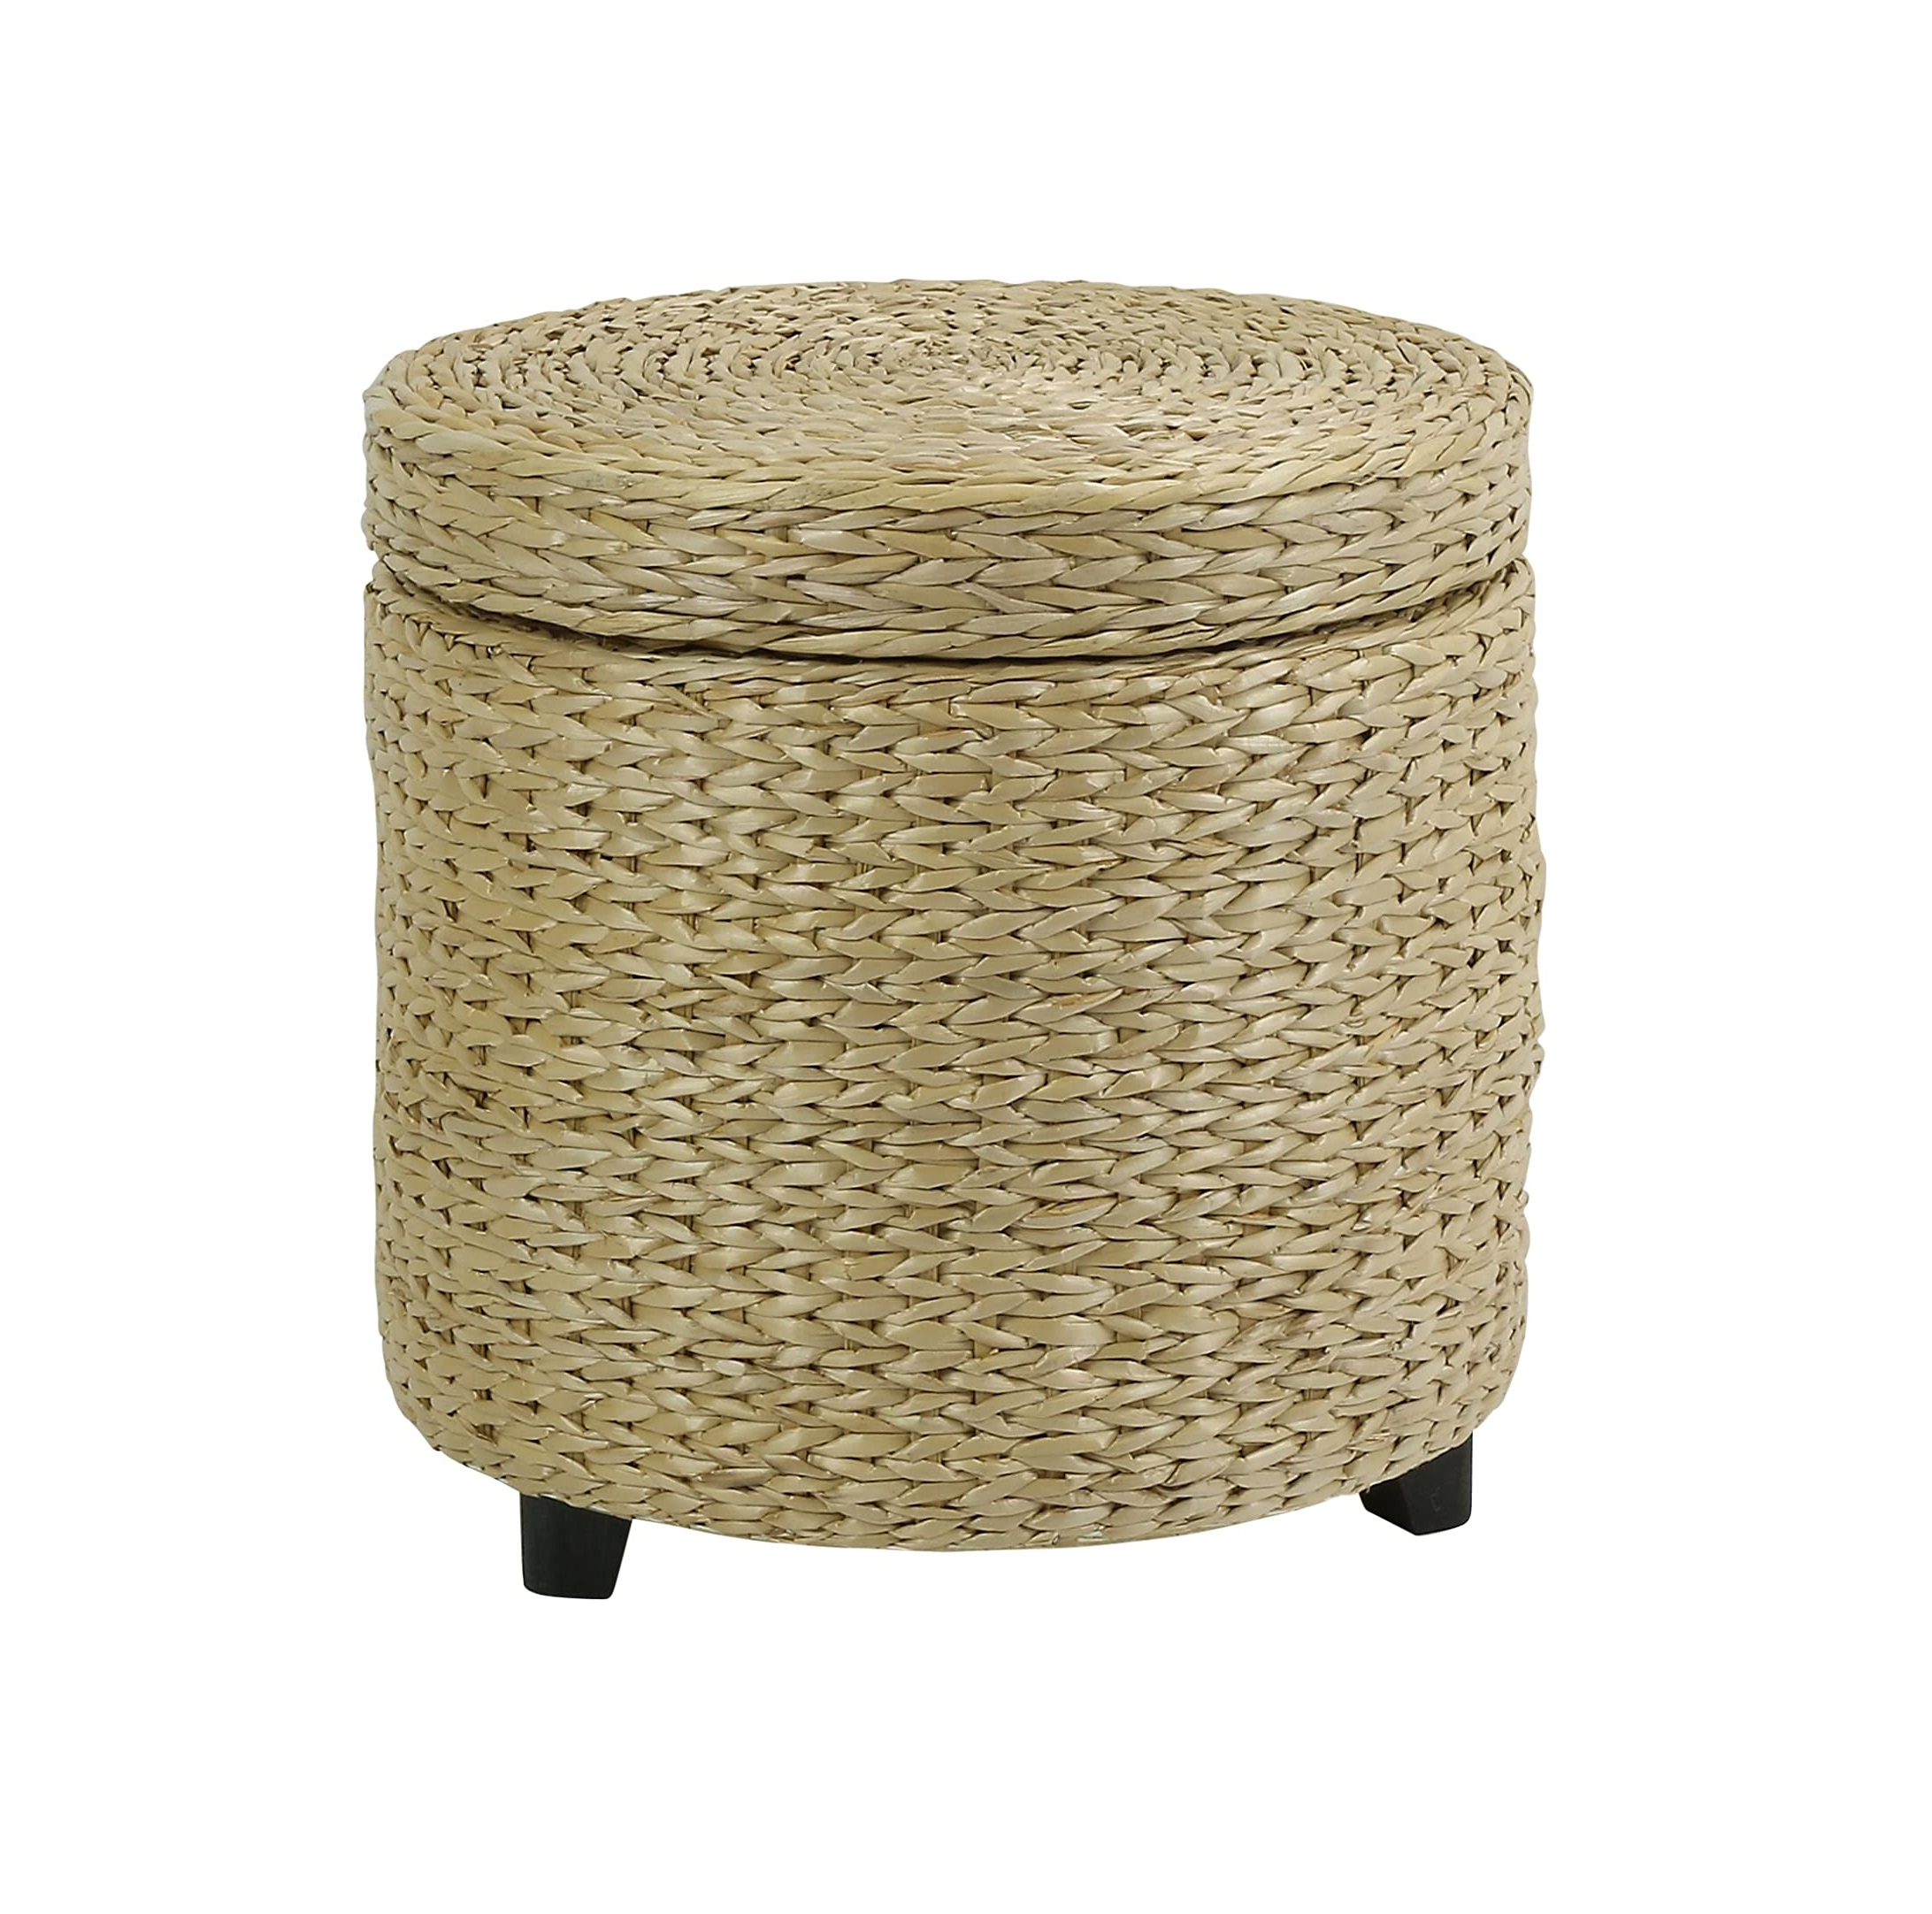 Braided Hand Woven Natural water hyacinth Round Cushion Ottoman round woven Floor Footres craft Christmas decorations poufs